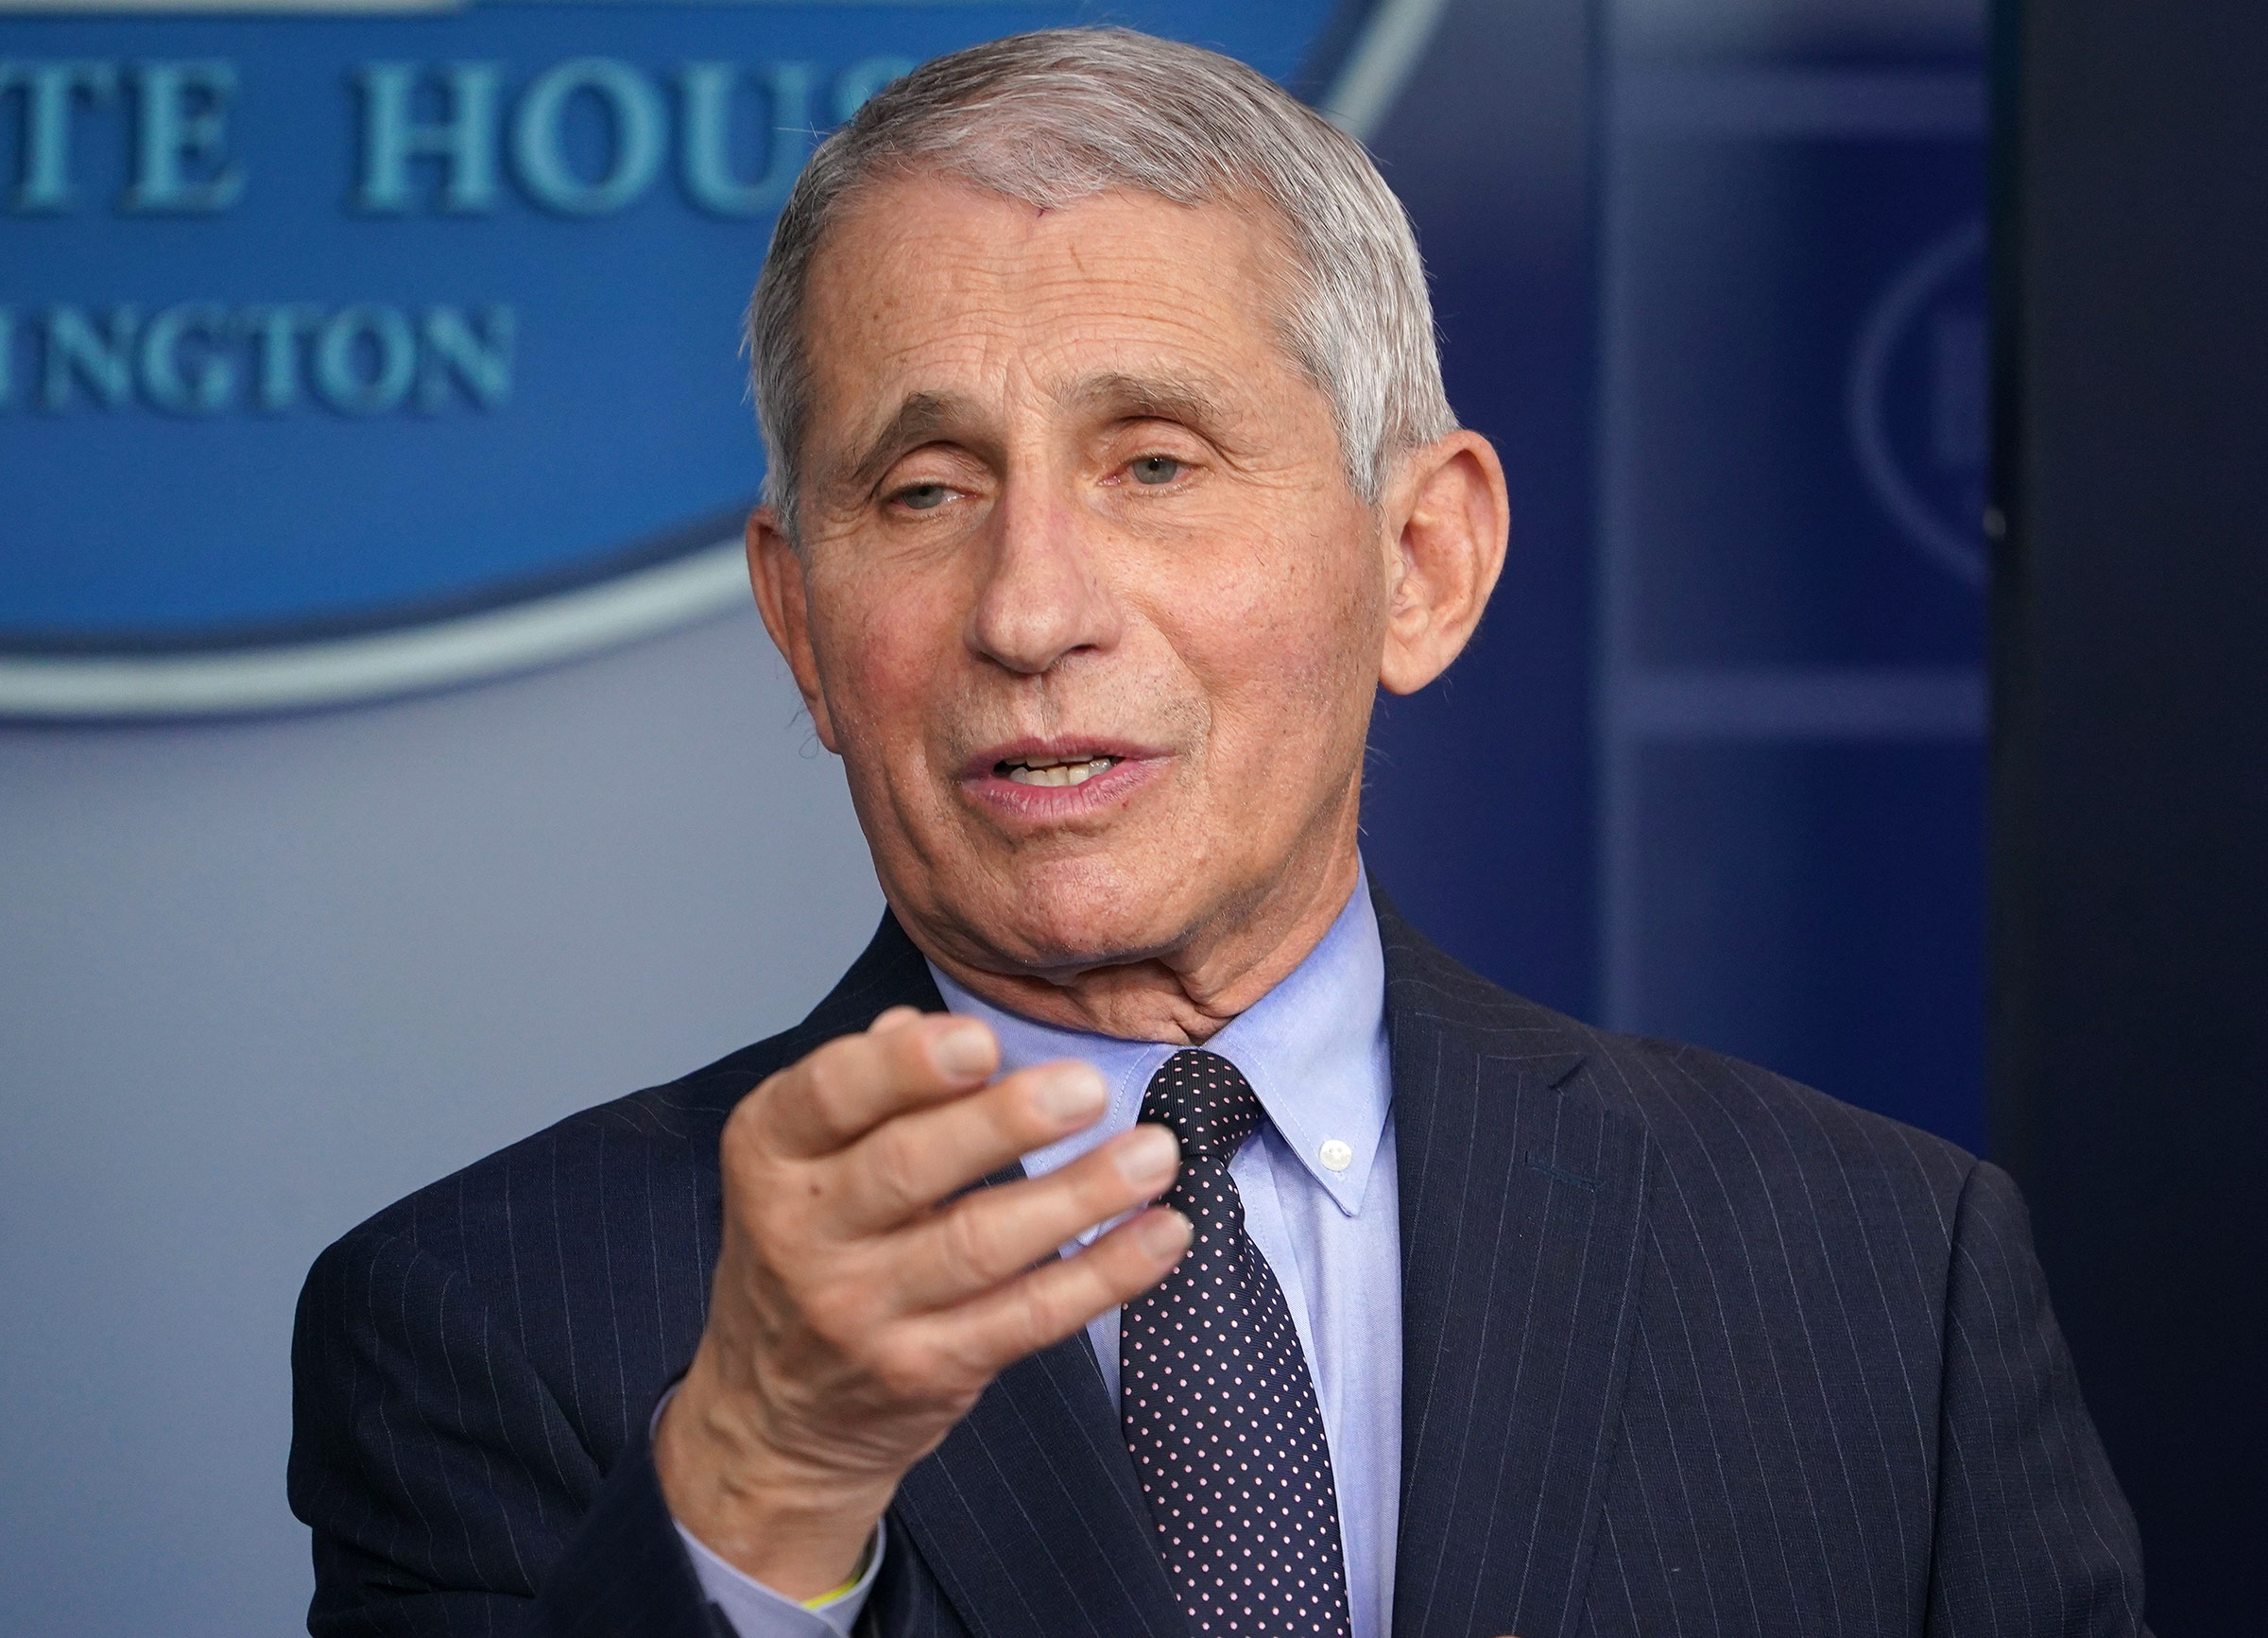 Dr. Anthony Fauci speaks during a press briefing at the White House on January 21, in Washington, DC.